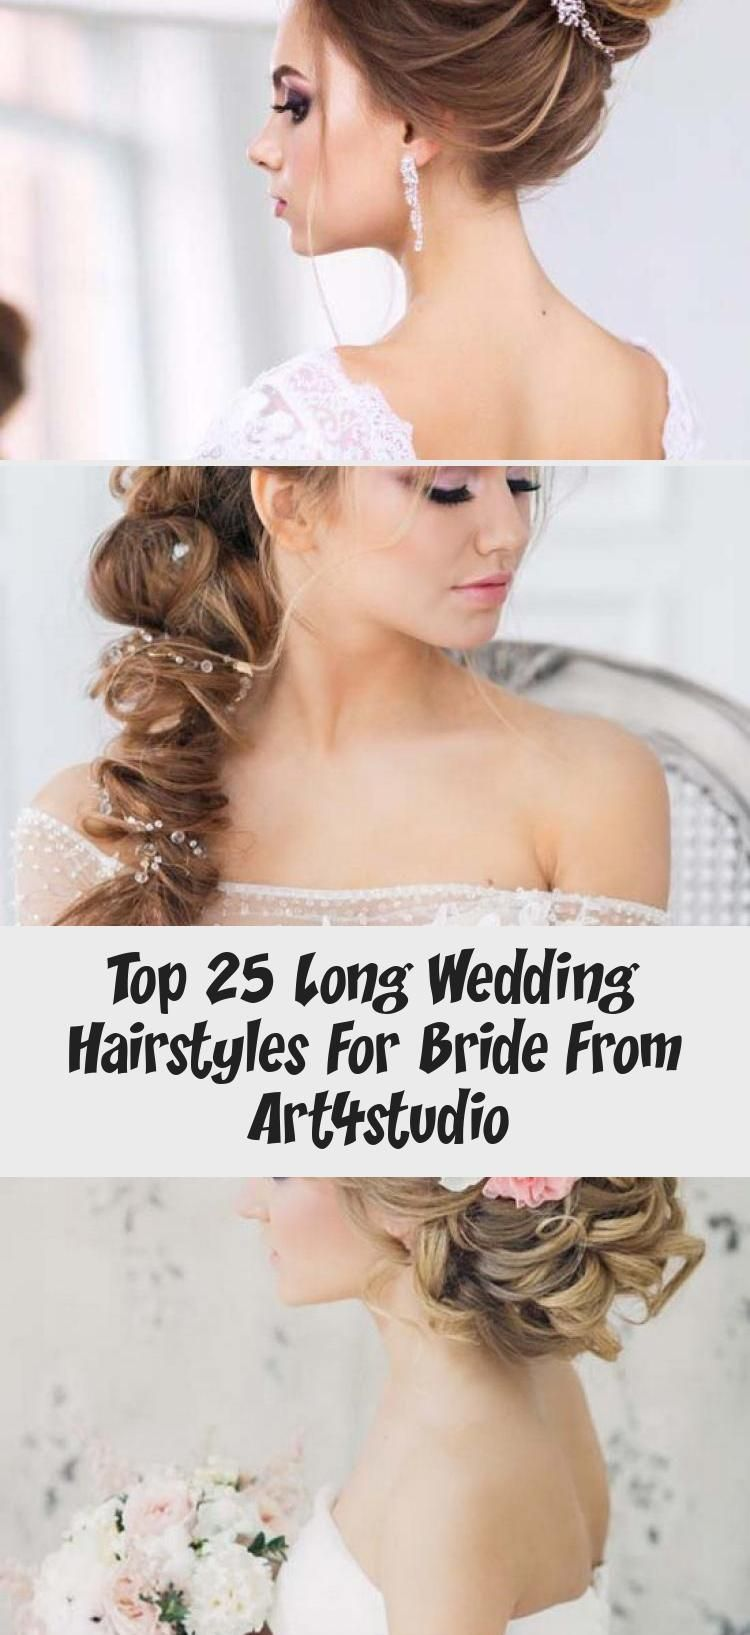 Top 25 Long Wedding Hairstyles For Bride From Art4studio